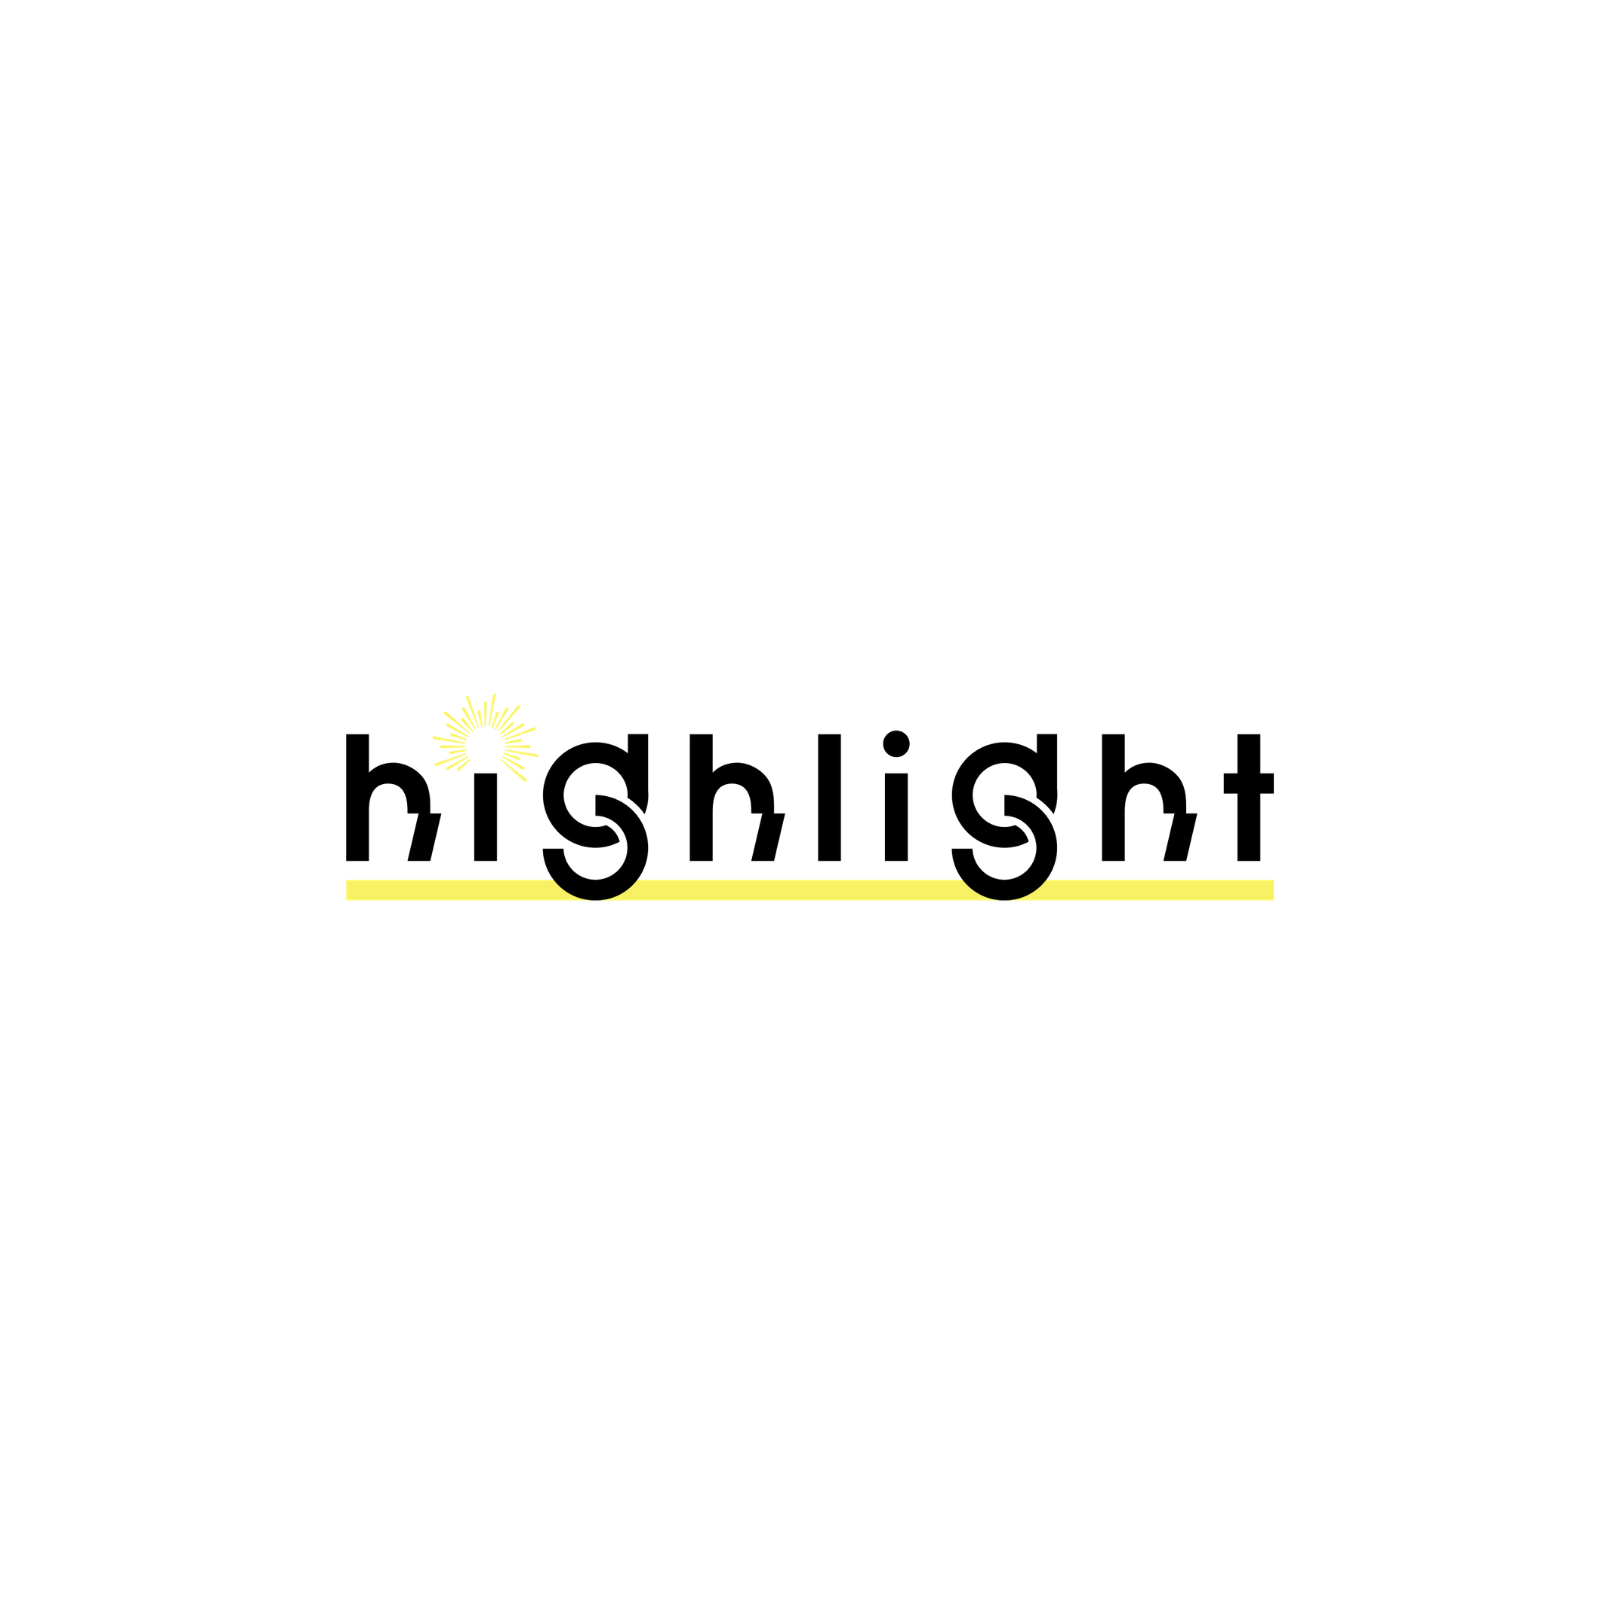 highlight-Square